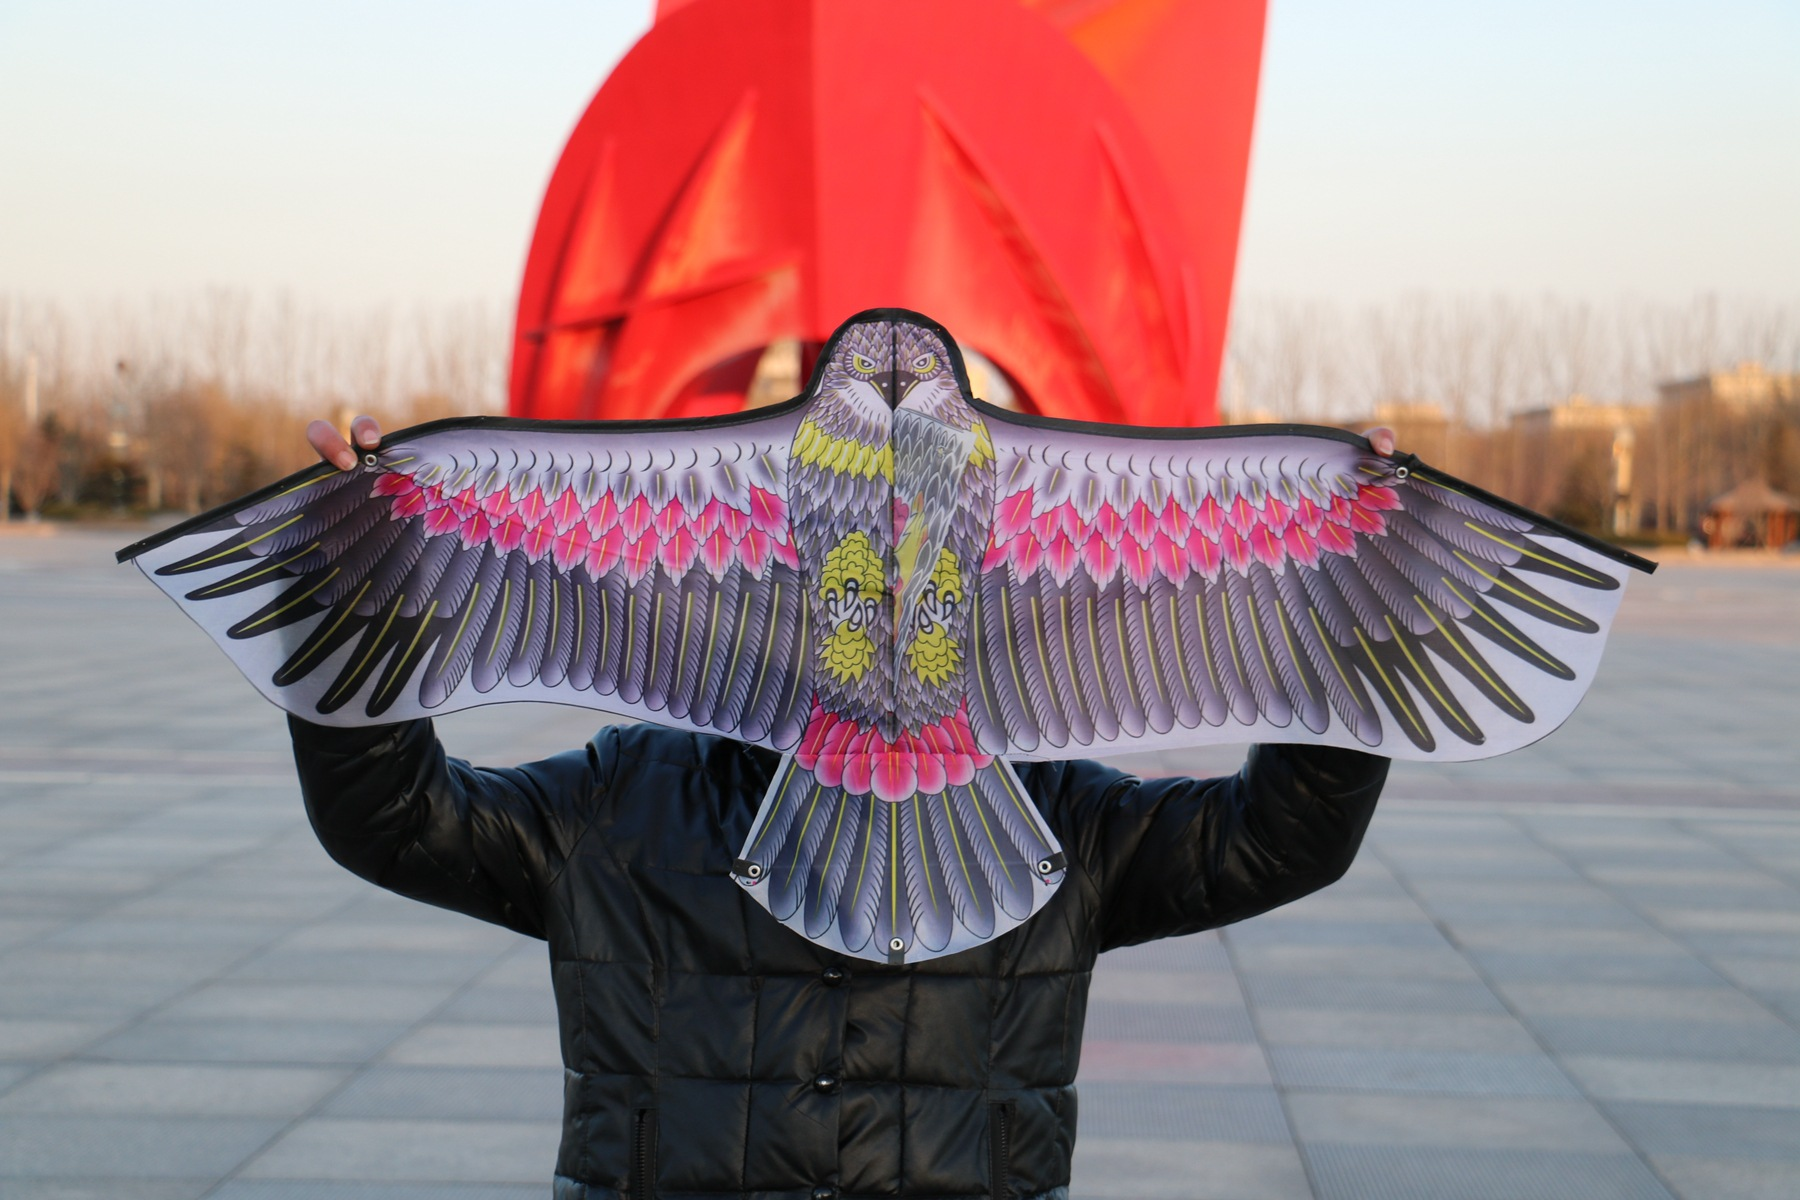 1-Pcs-Random-Color-DIY-Eagle-Kite-Painting-Kite-Flying-without-Handle-Line-Outdoor-Toys-Flying-Papalote-Toy-Kite-Fly-a-Kite-1